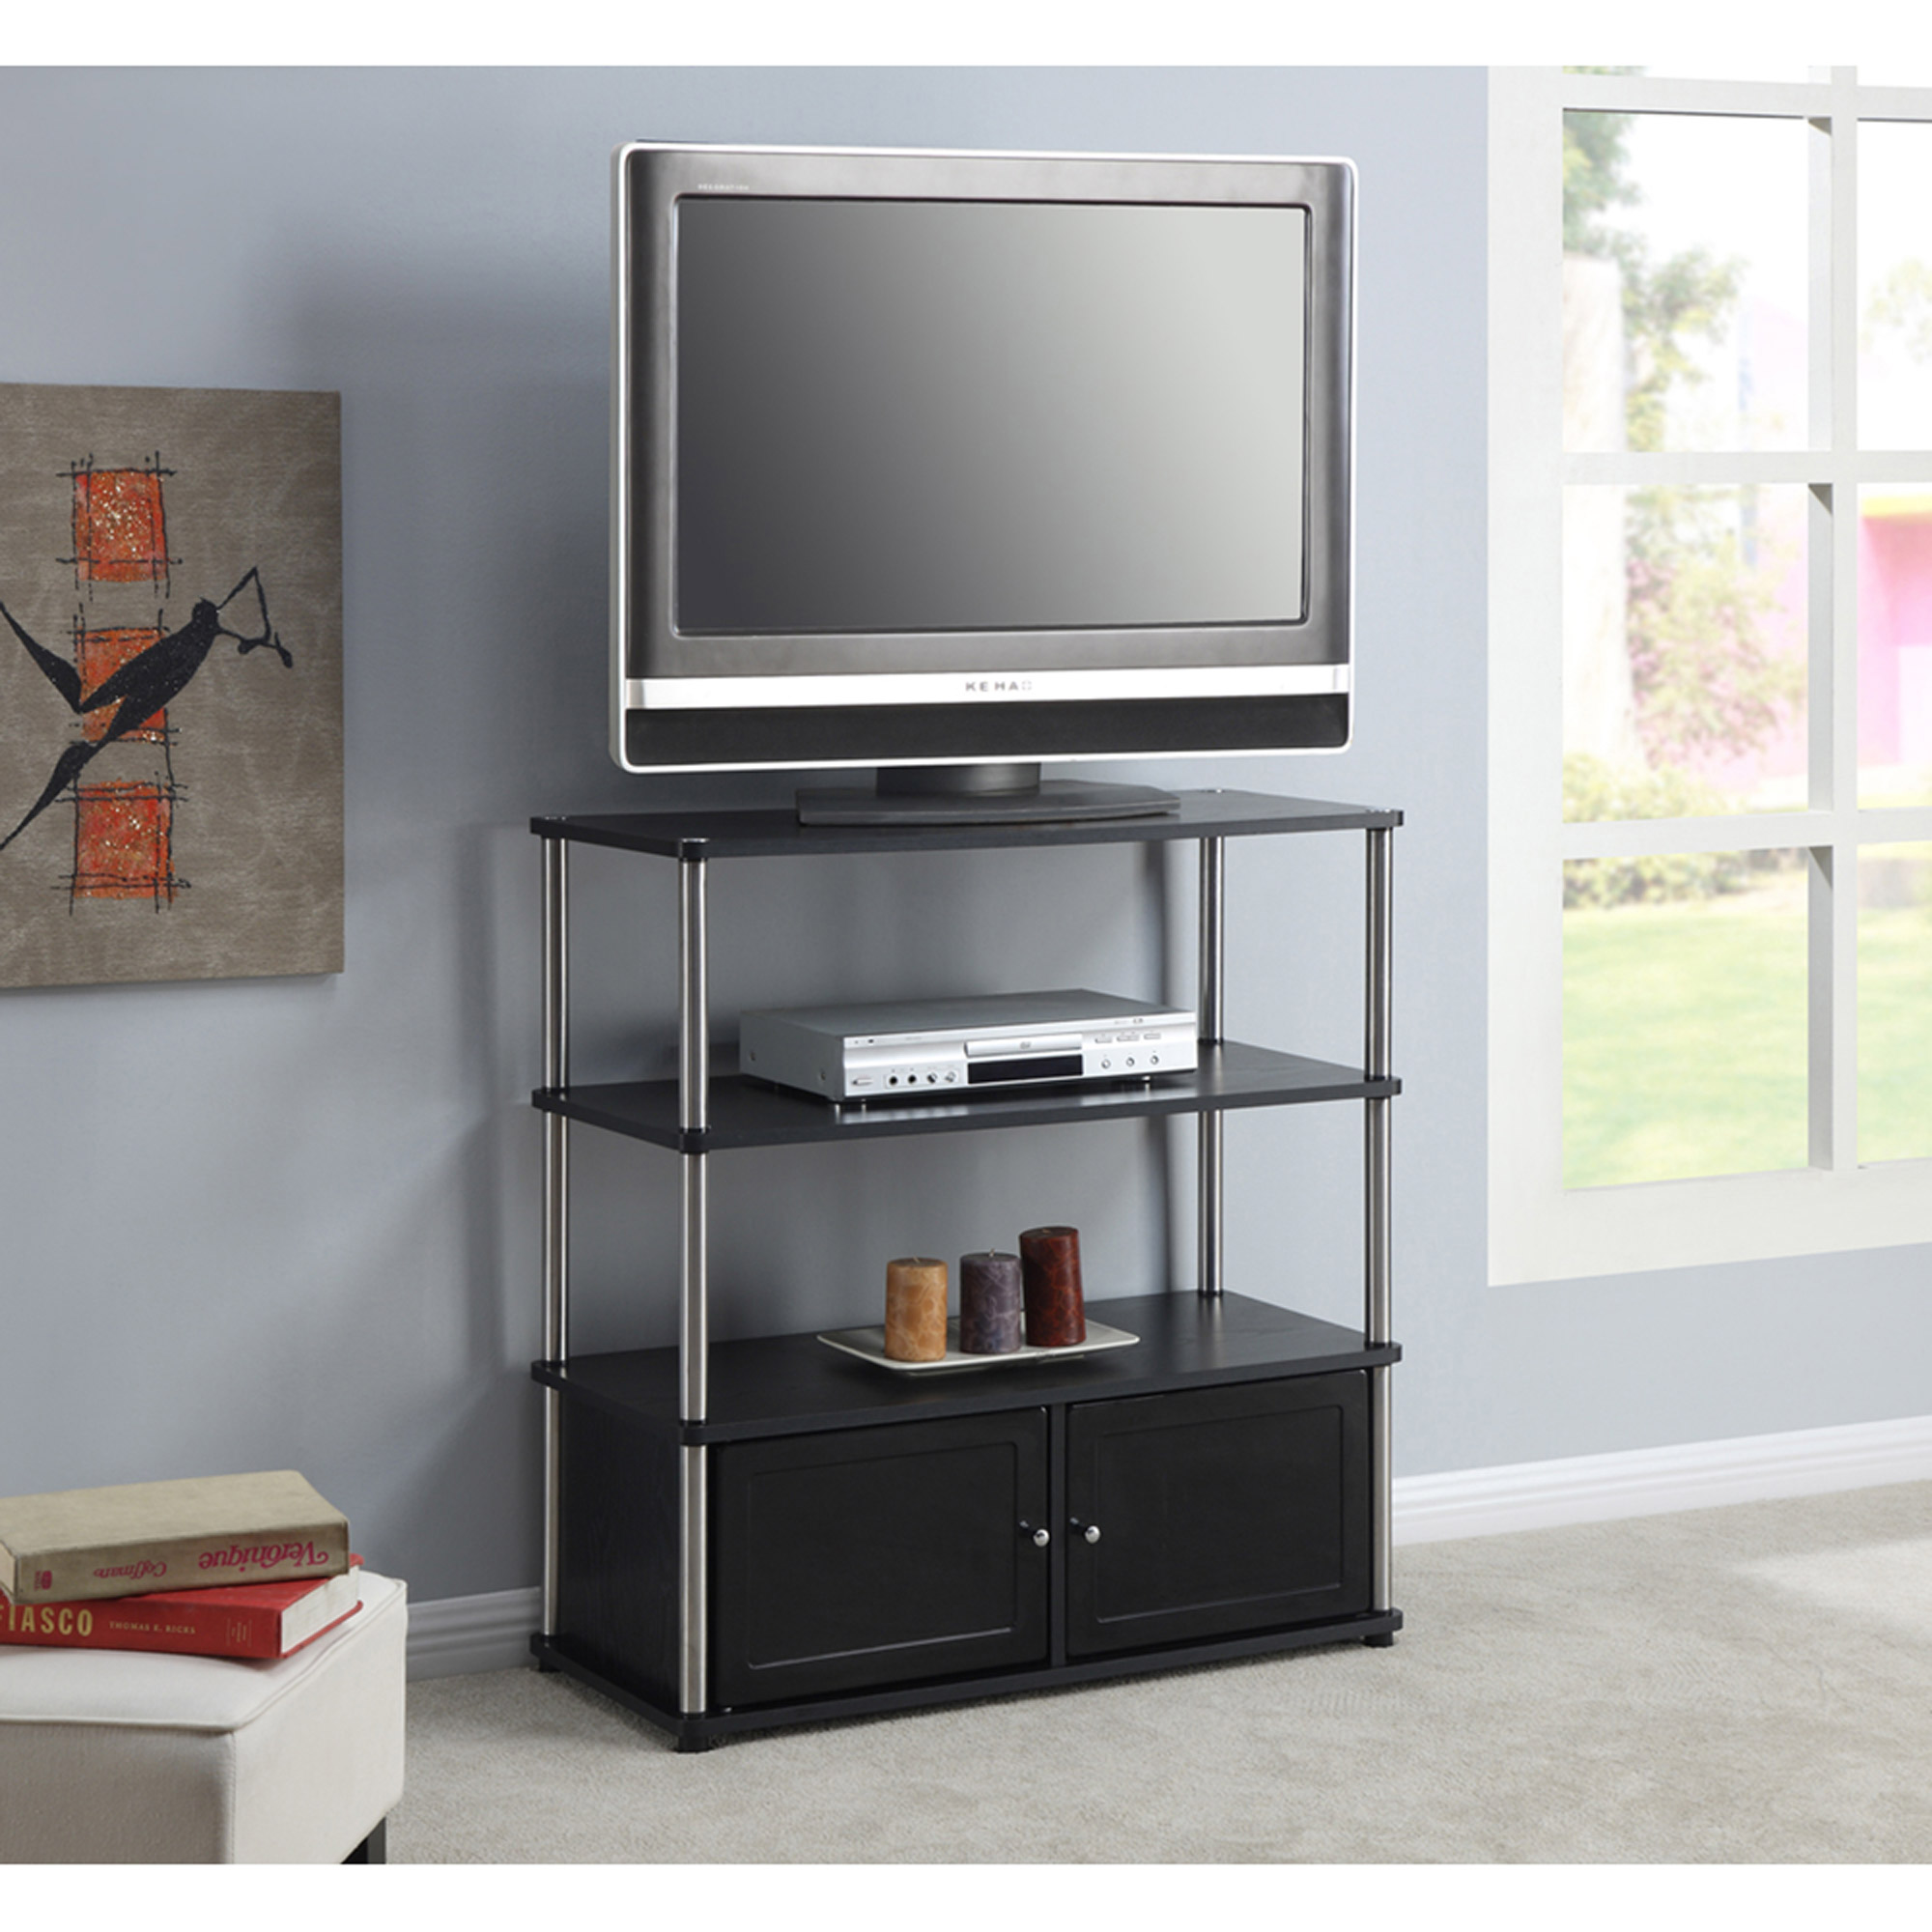 go tv seewetterbericht stands rooms info rustic with fireplace stand furniture to living room